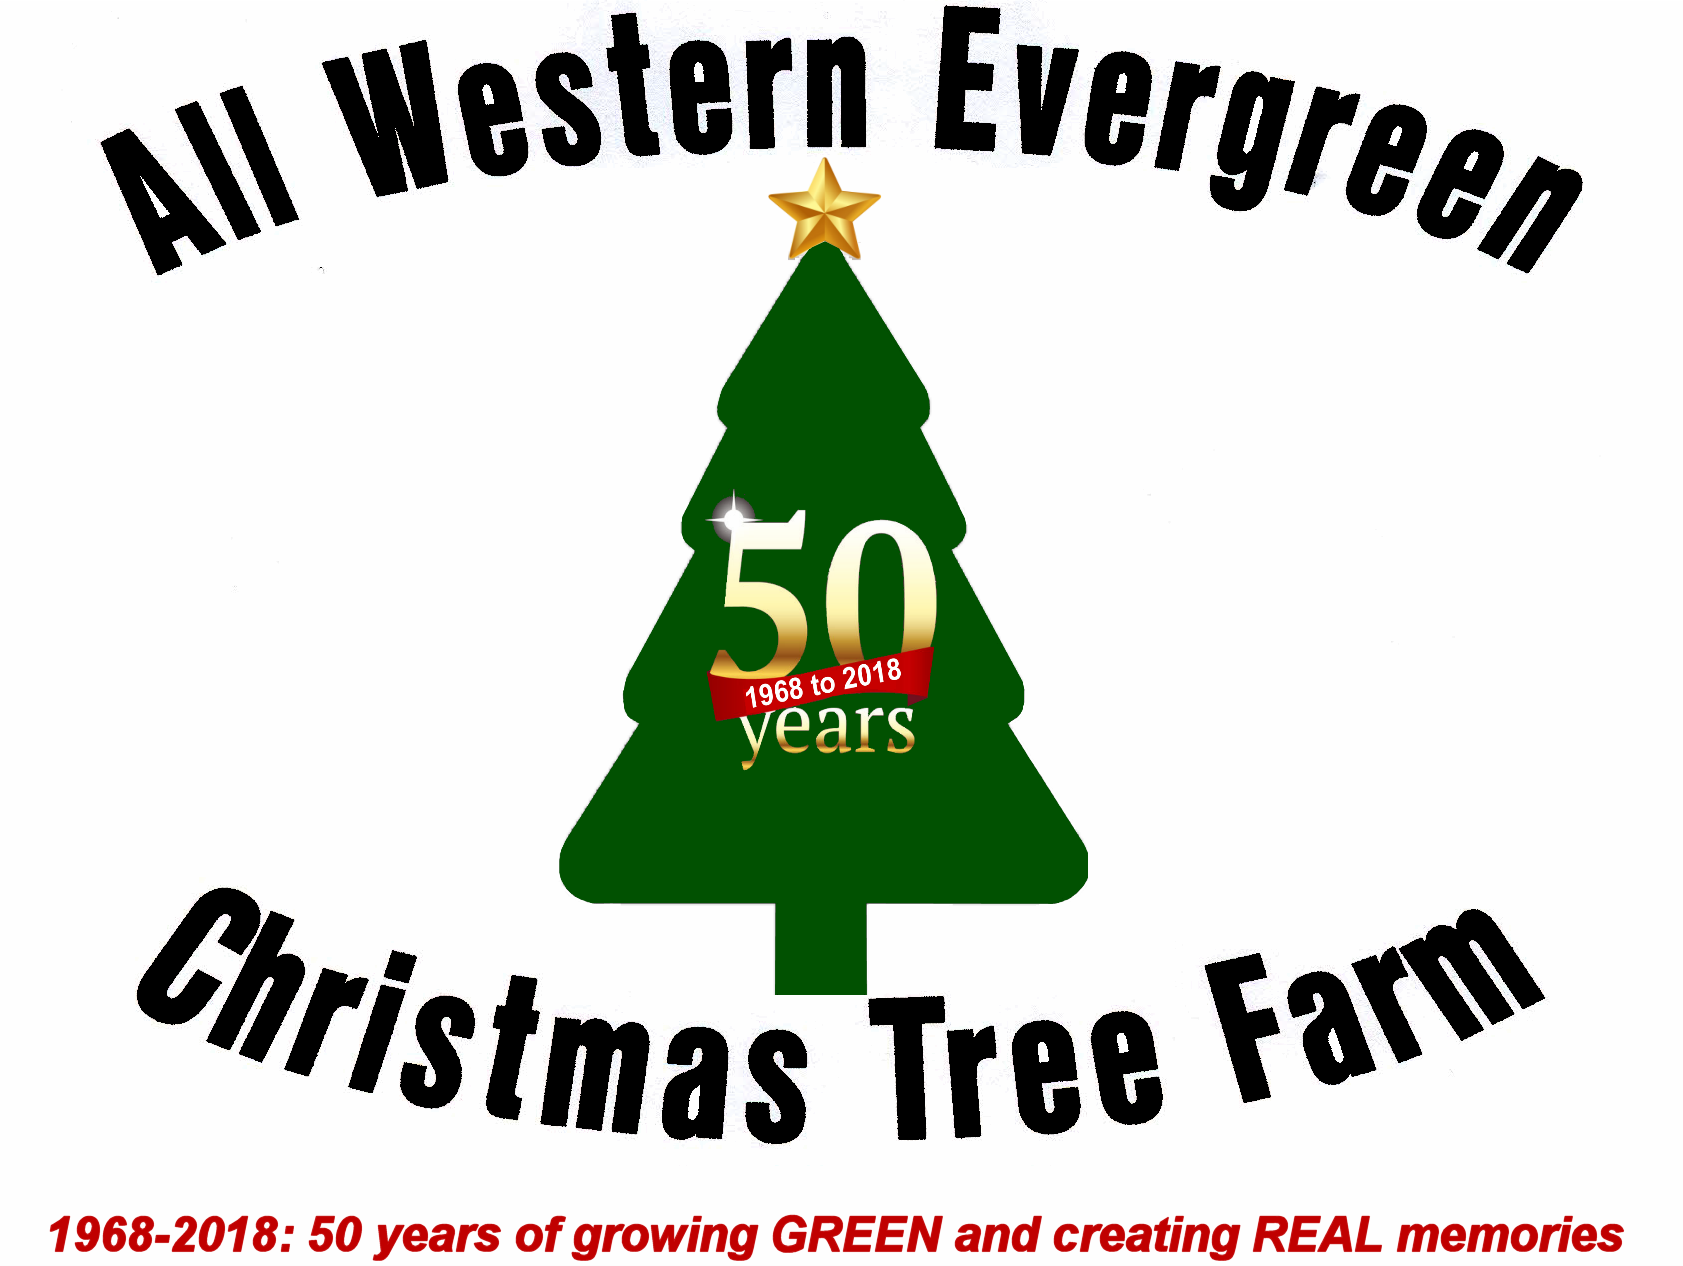 All Western Evergreen Christmas Tree Farm, Livingston County Chamber of Commerce